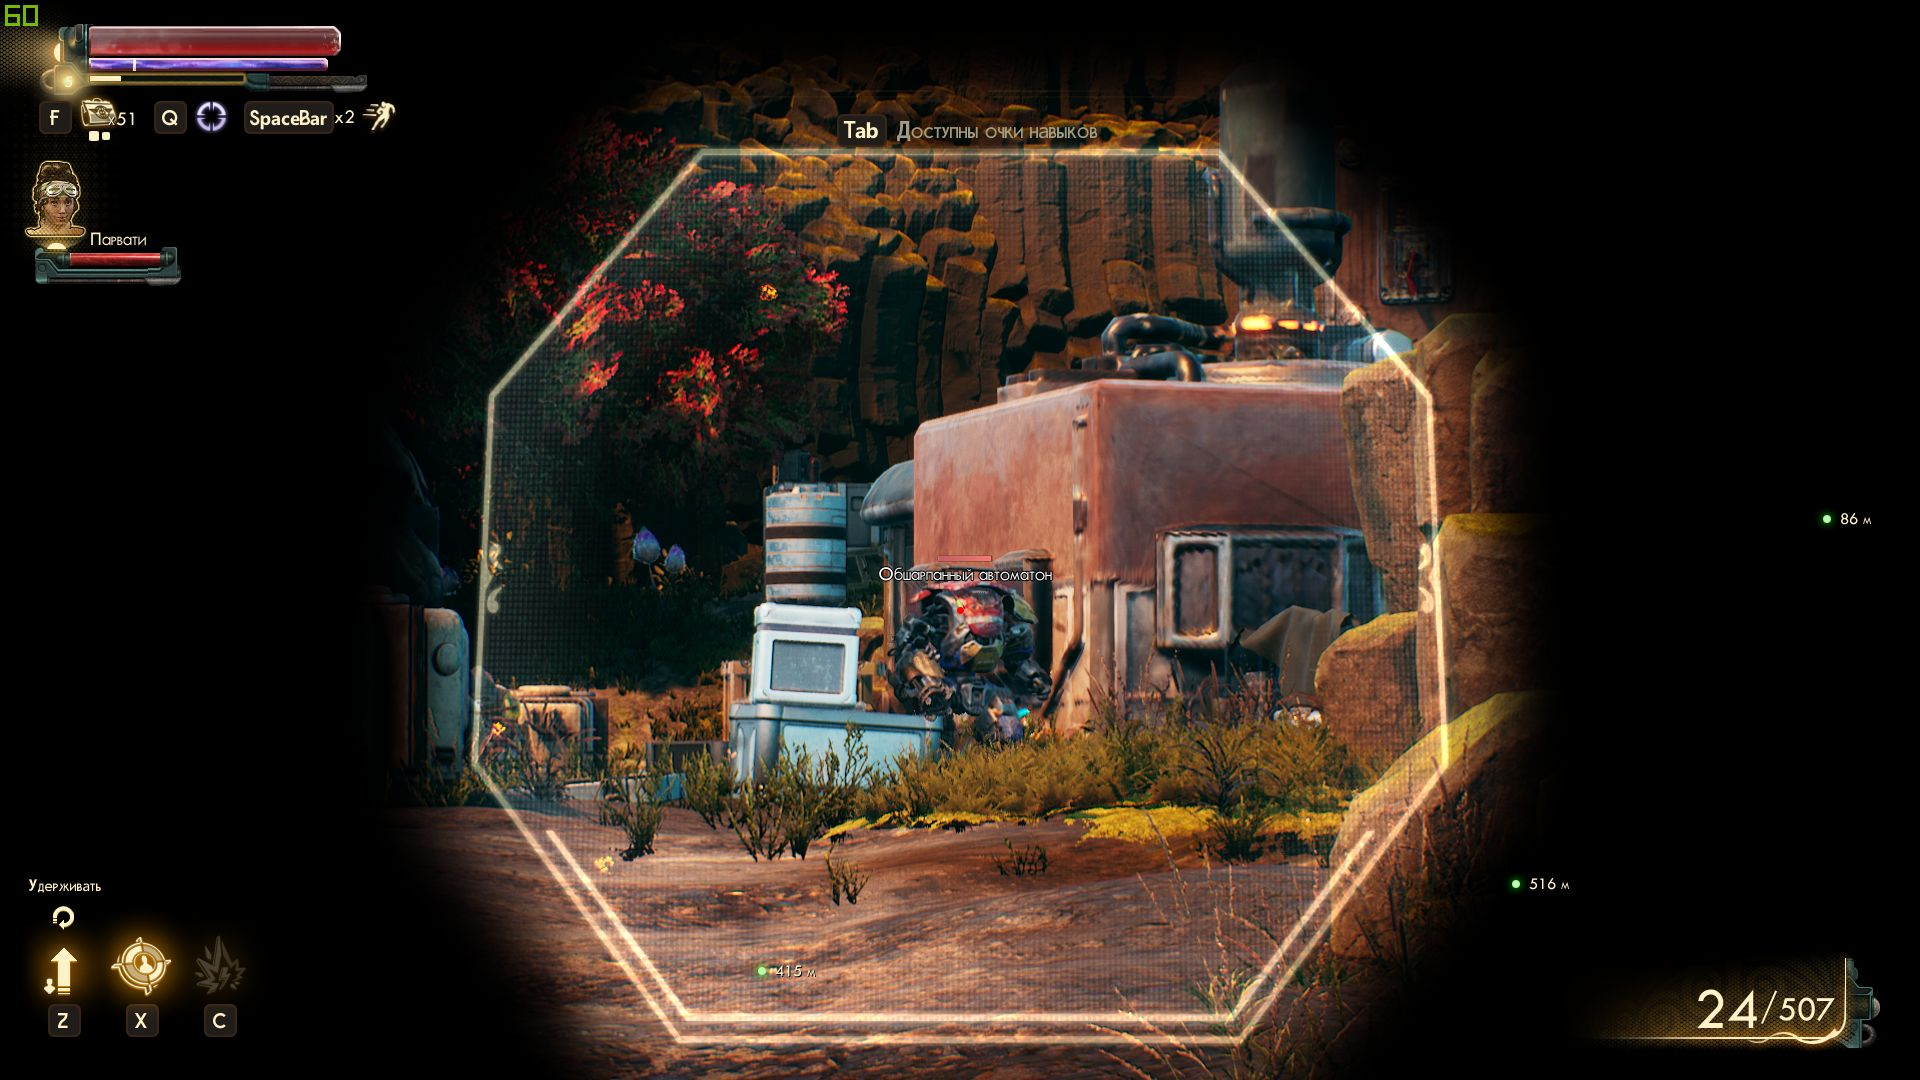 00081.Jpg - Outer Worlds, the